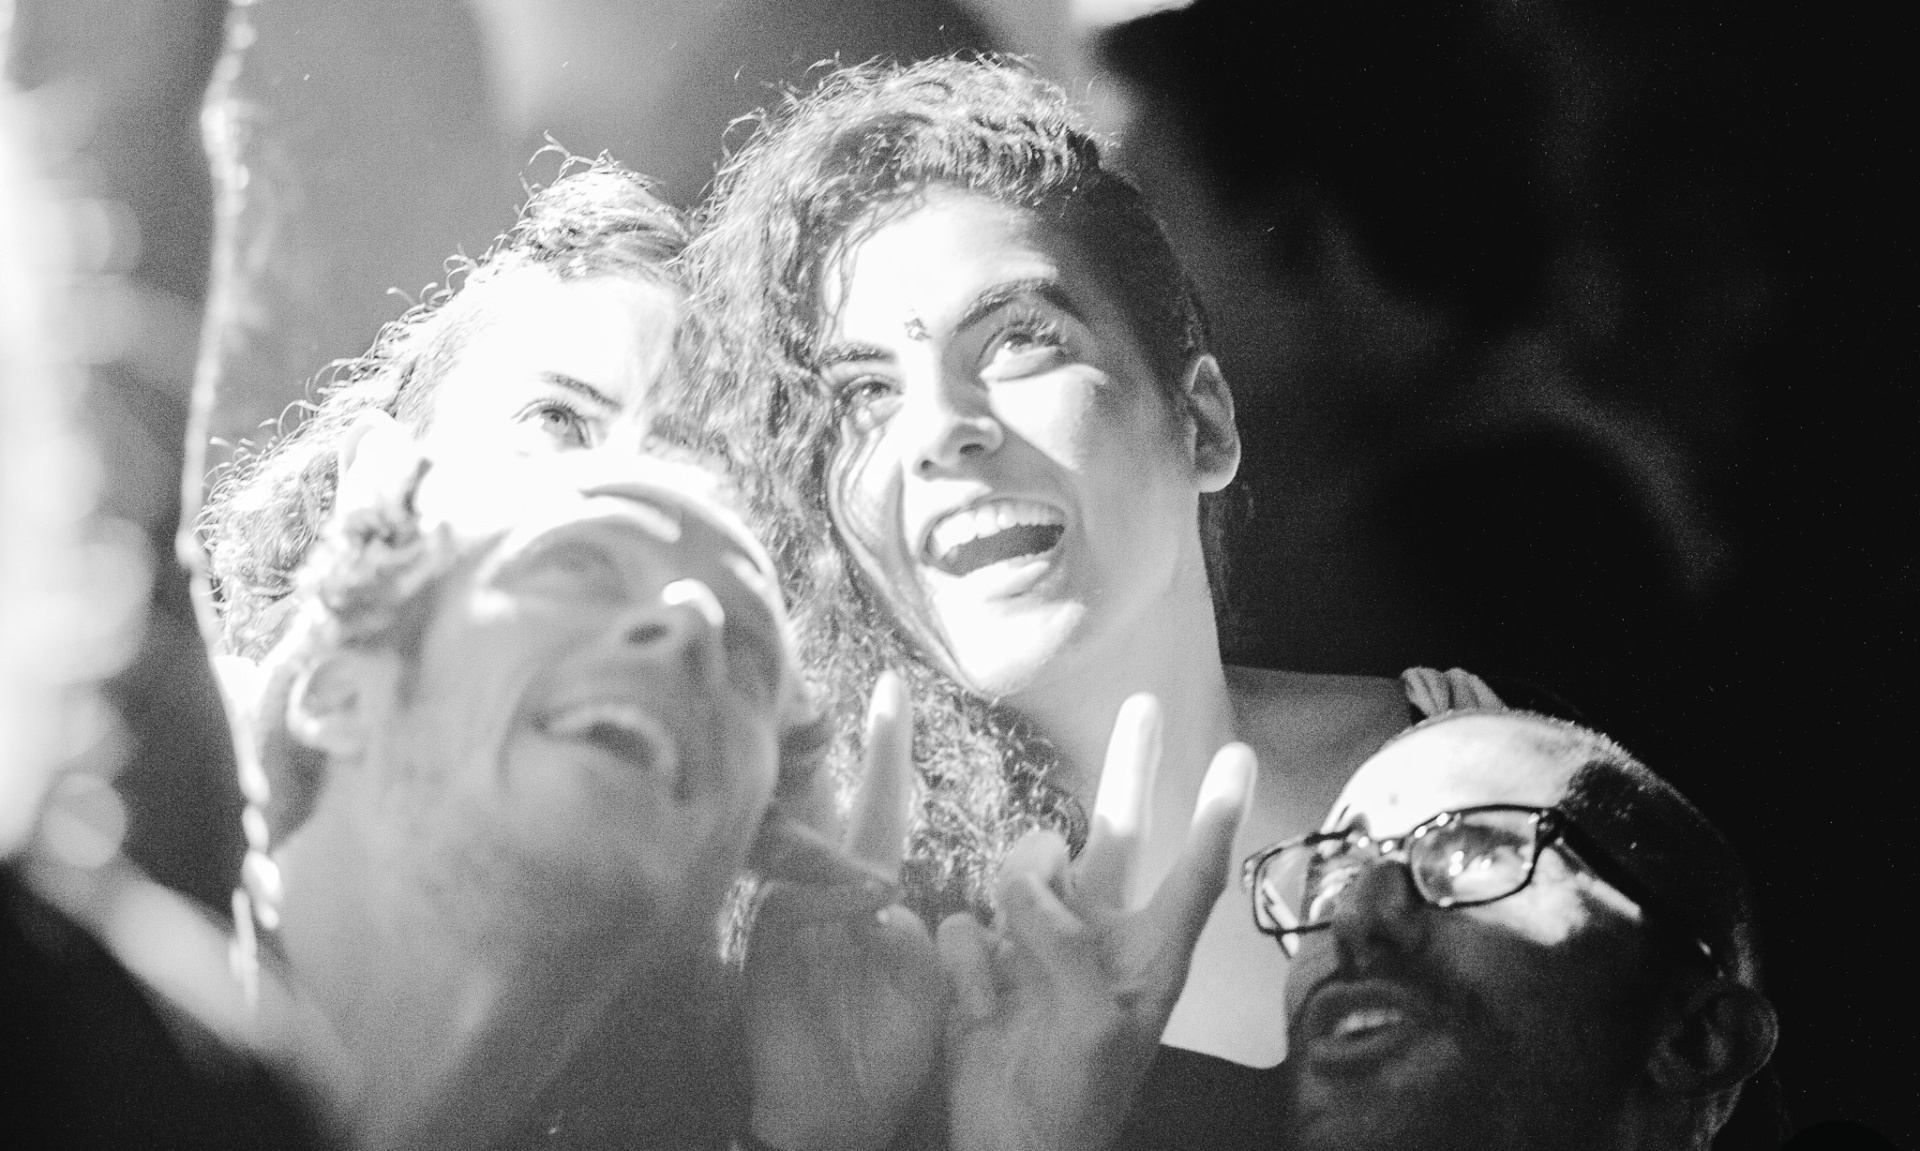 Black and white photograph of the Shoreditch Fashion Show- pictured are people taking a selfie. Graphic design by Barefaced Studios, design agency based in Islington, North London.